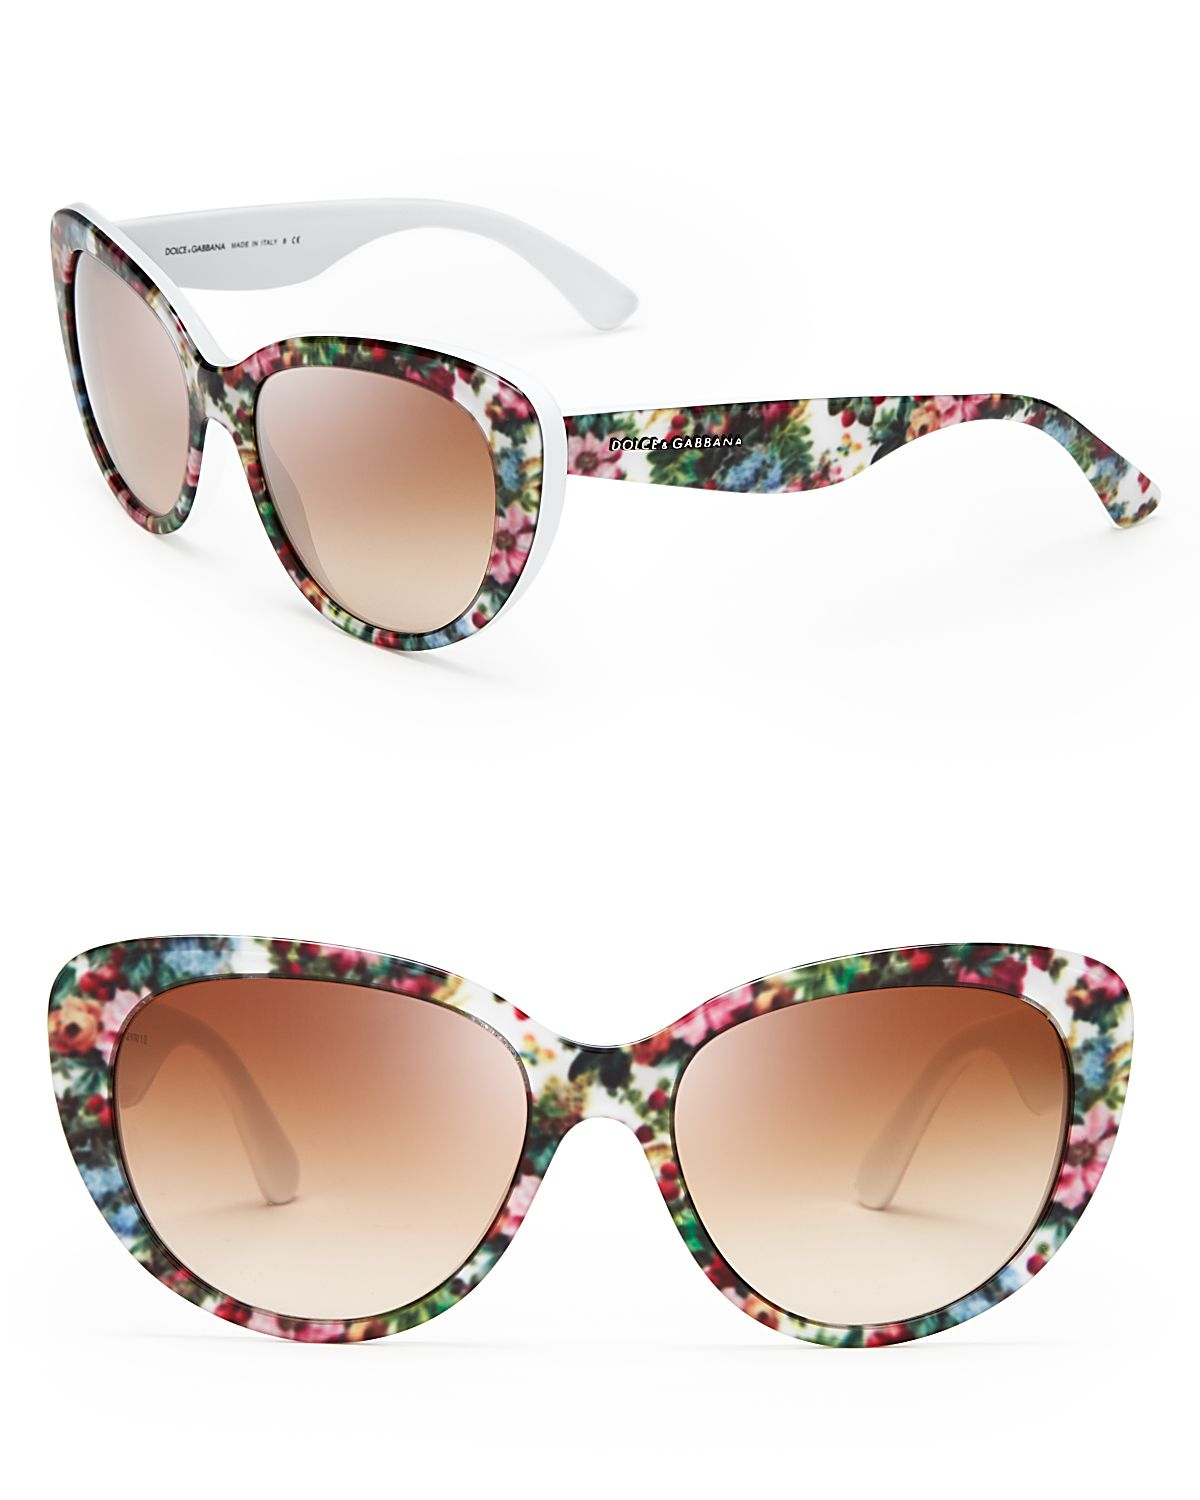 Dolce Gabbana Flower Sunglasses  dolce gabbana fl cat eye sunglasses lyst